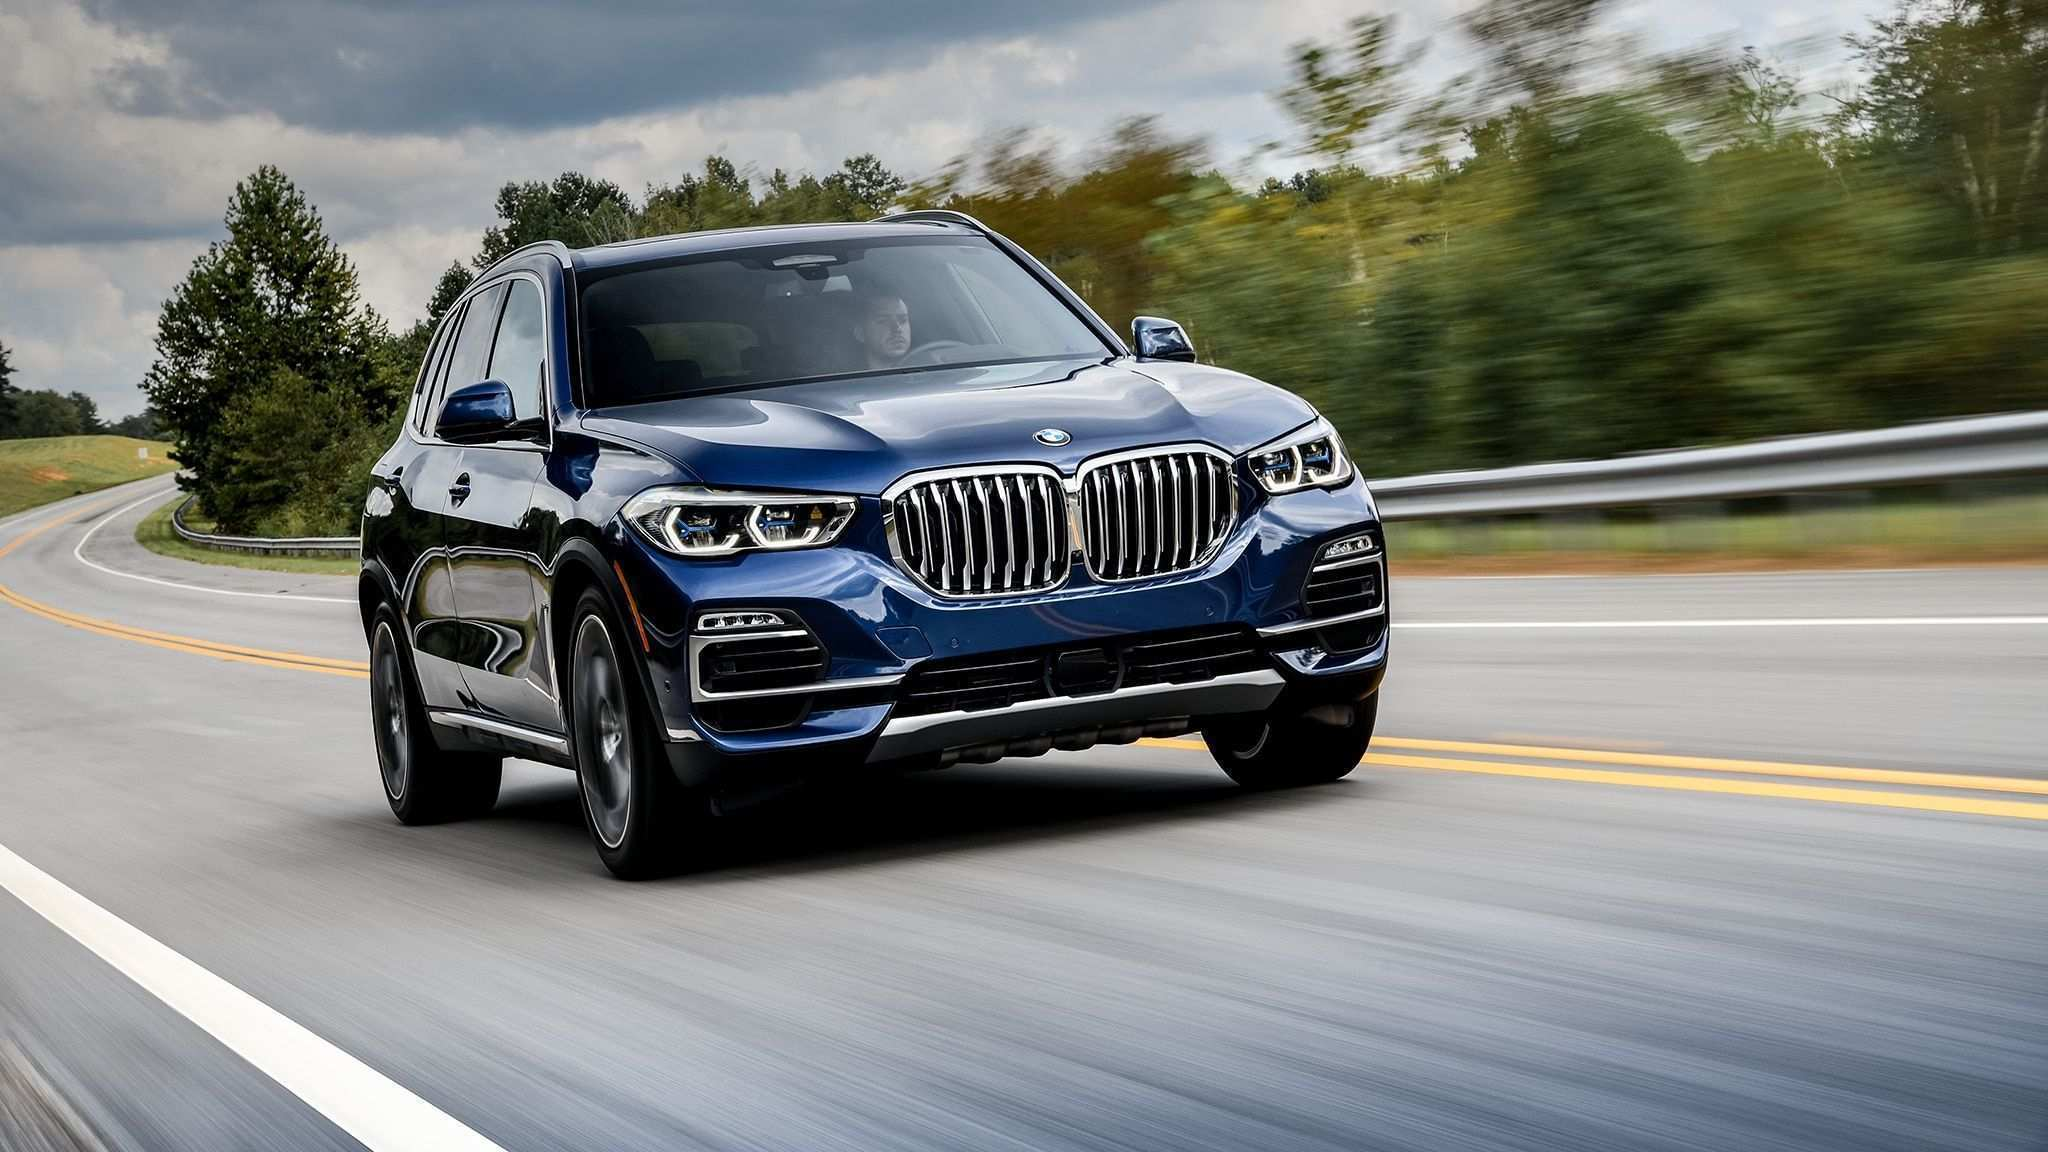 85 All New 2019 Bmw Terrain White Pricing